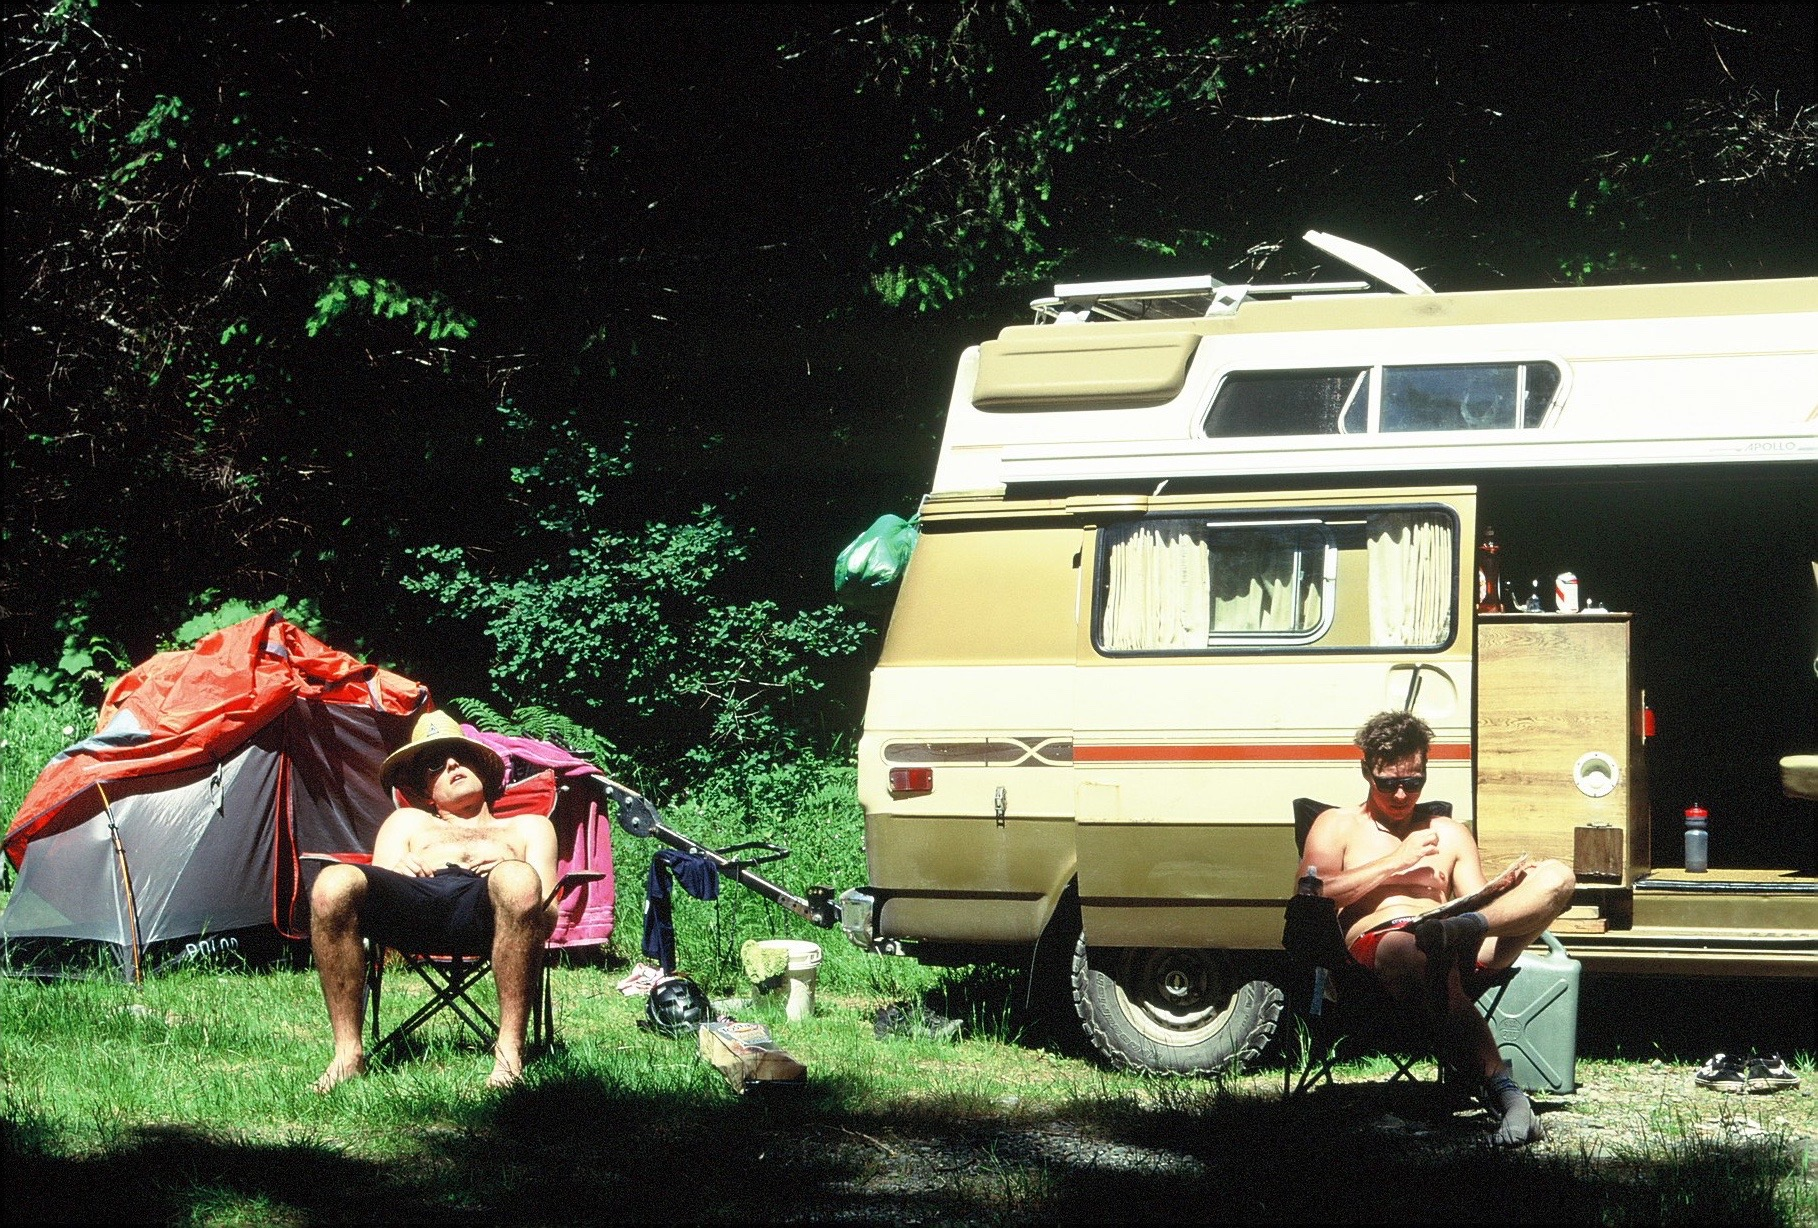 The Free Radicals hang out in front of their camper van